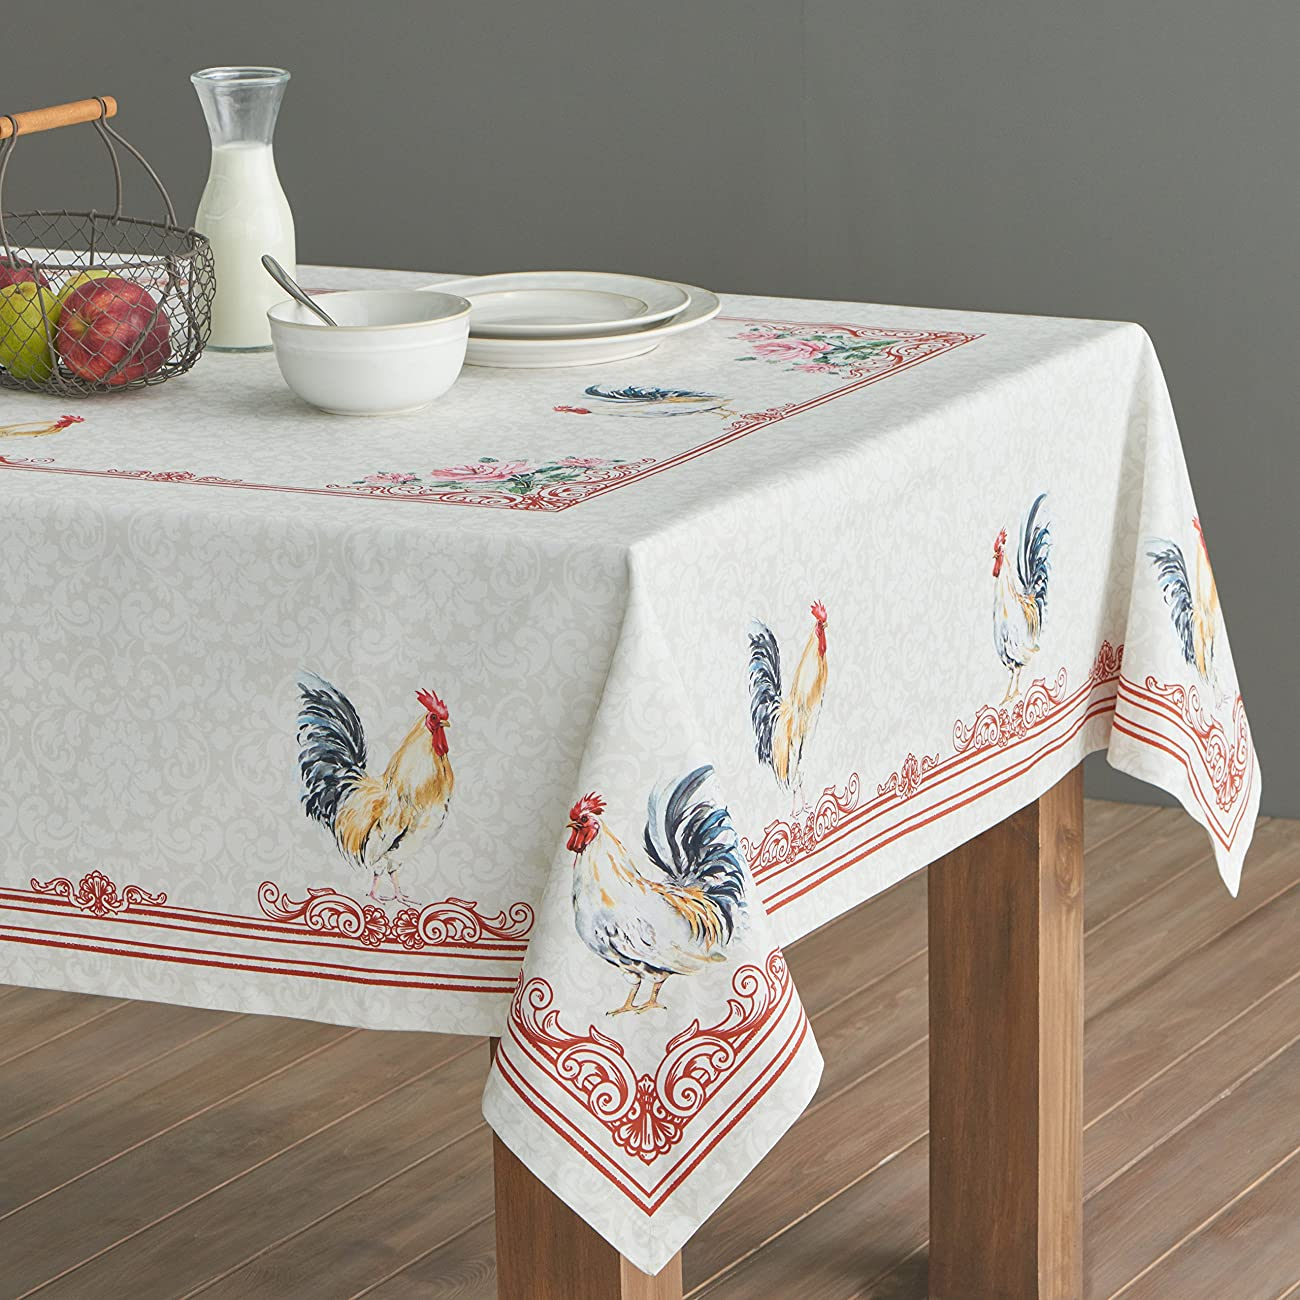 Maison d' Hermine Campagne 100% Cotton Tablecloth 60 - inch by 60 - inch. 2